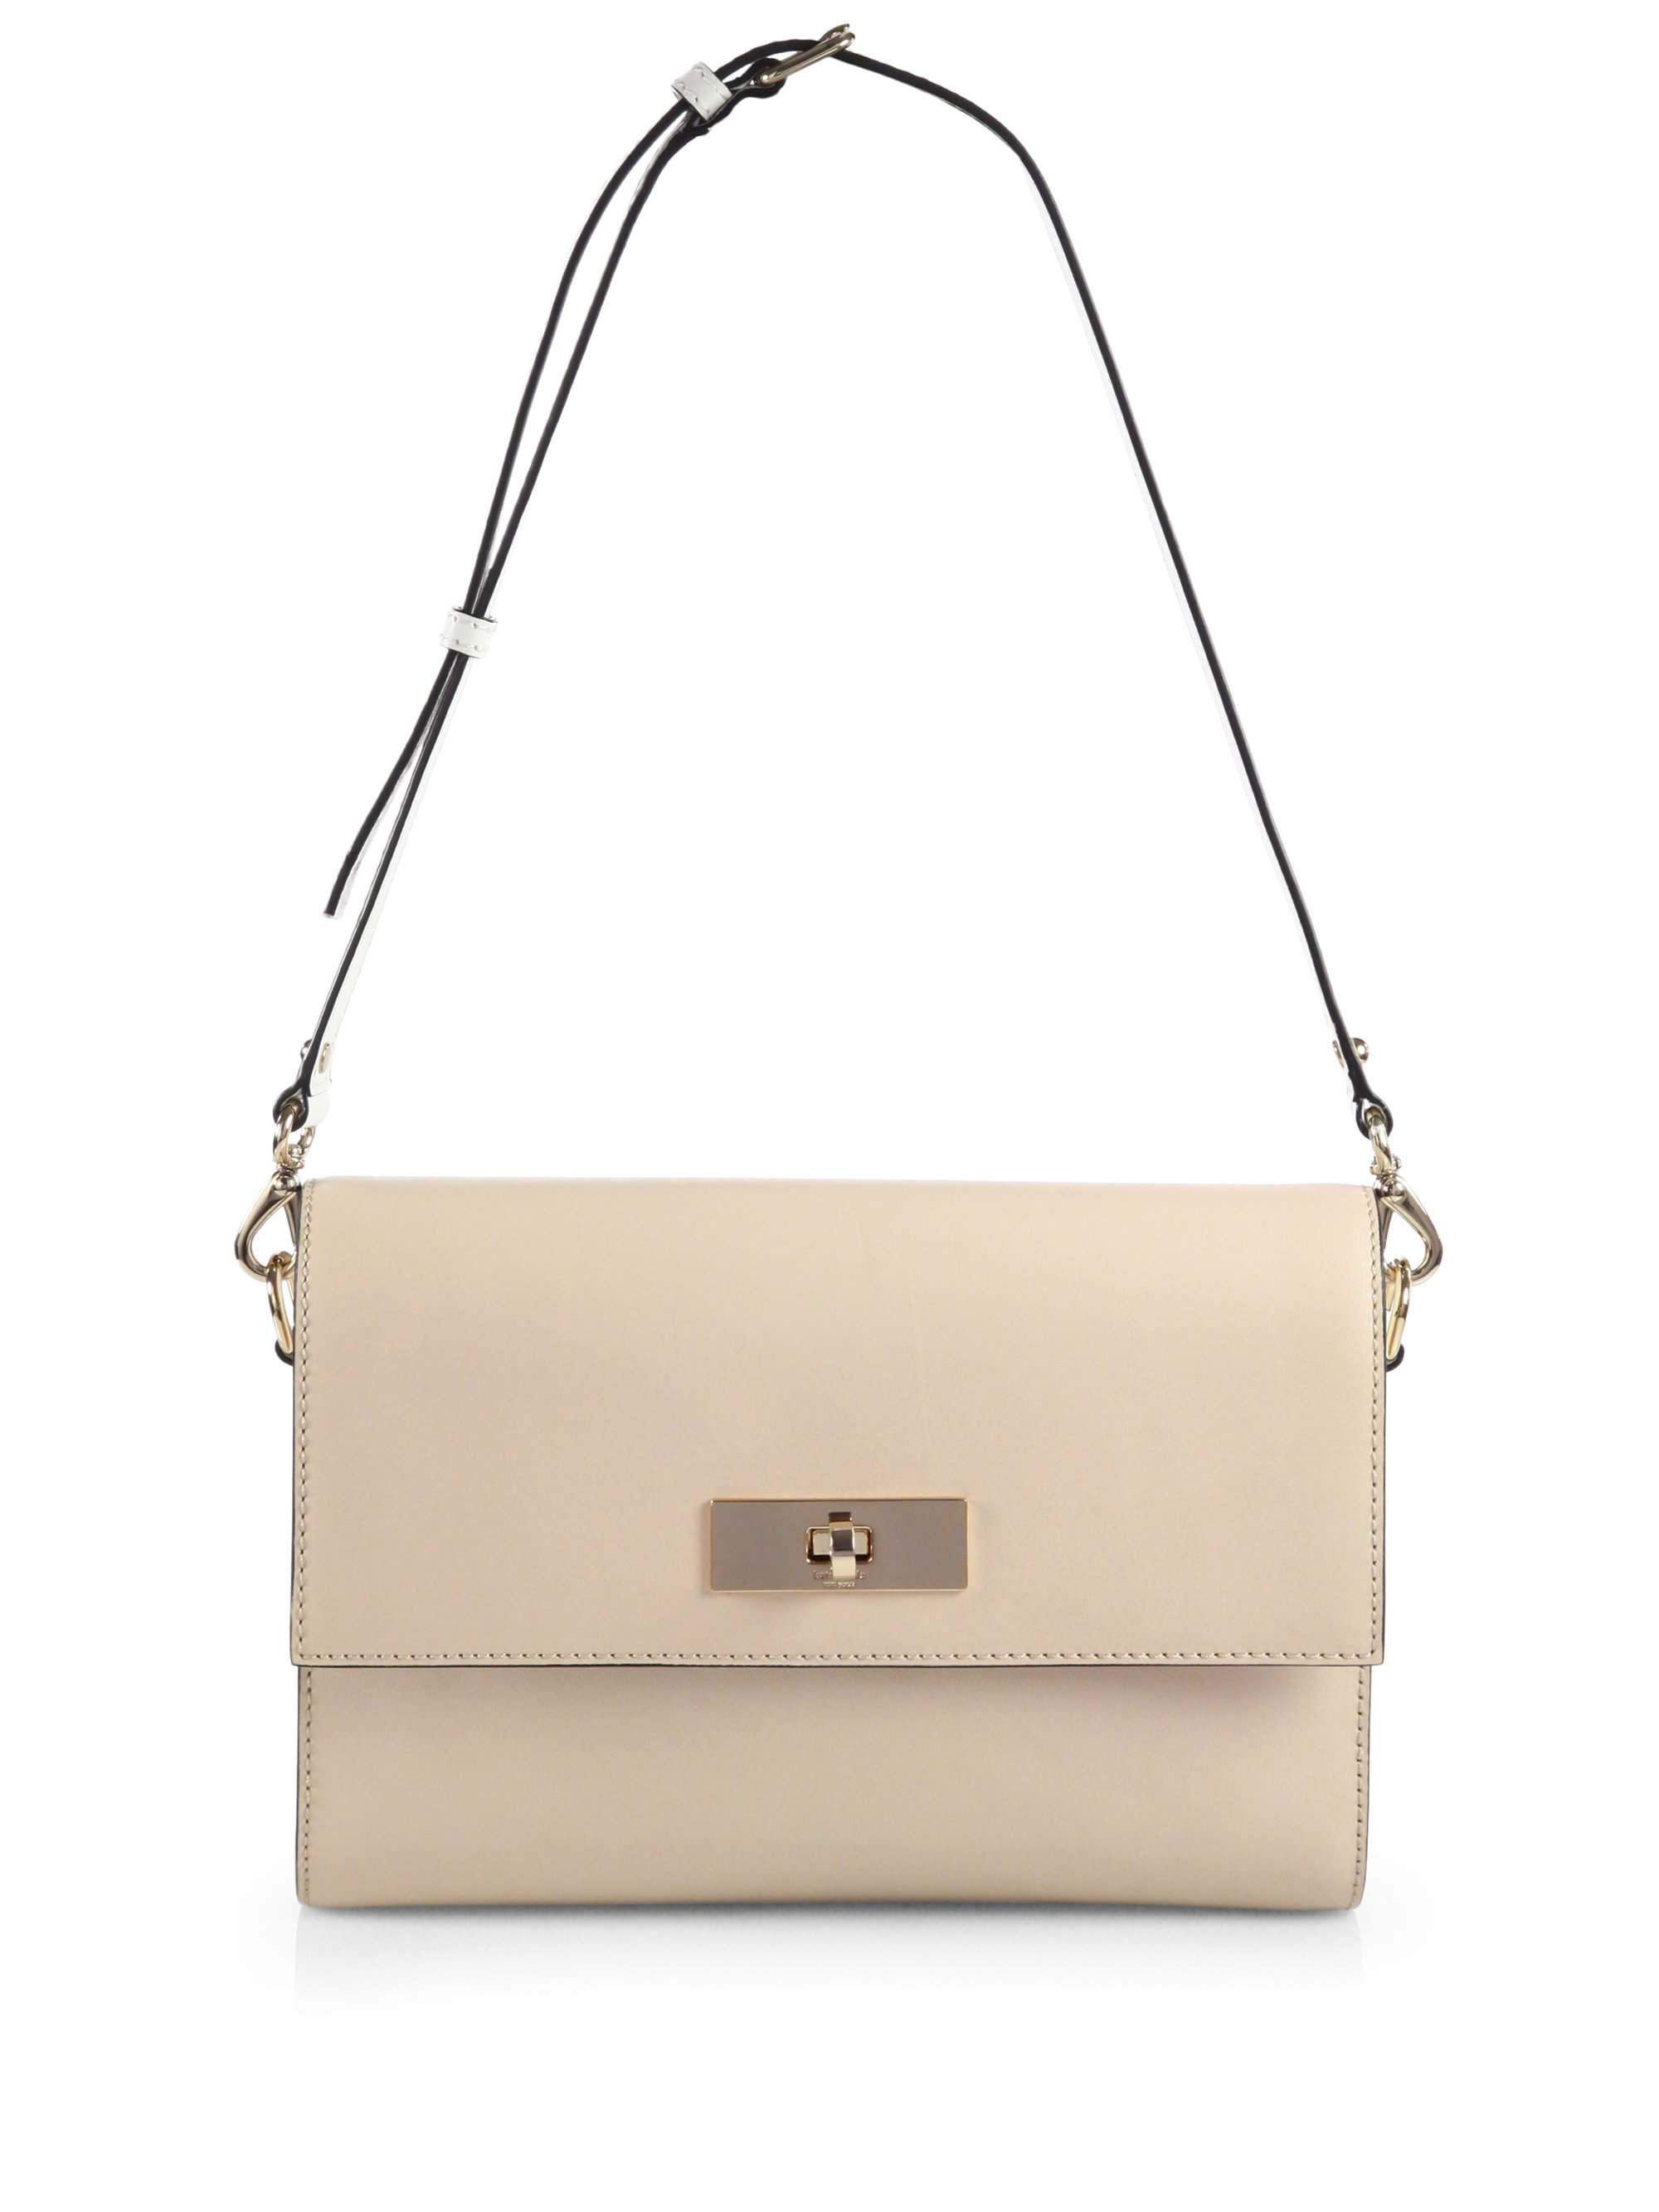 Kate spade new york Battery Park City Shoulder Bag in Natural | Lyst